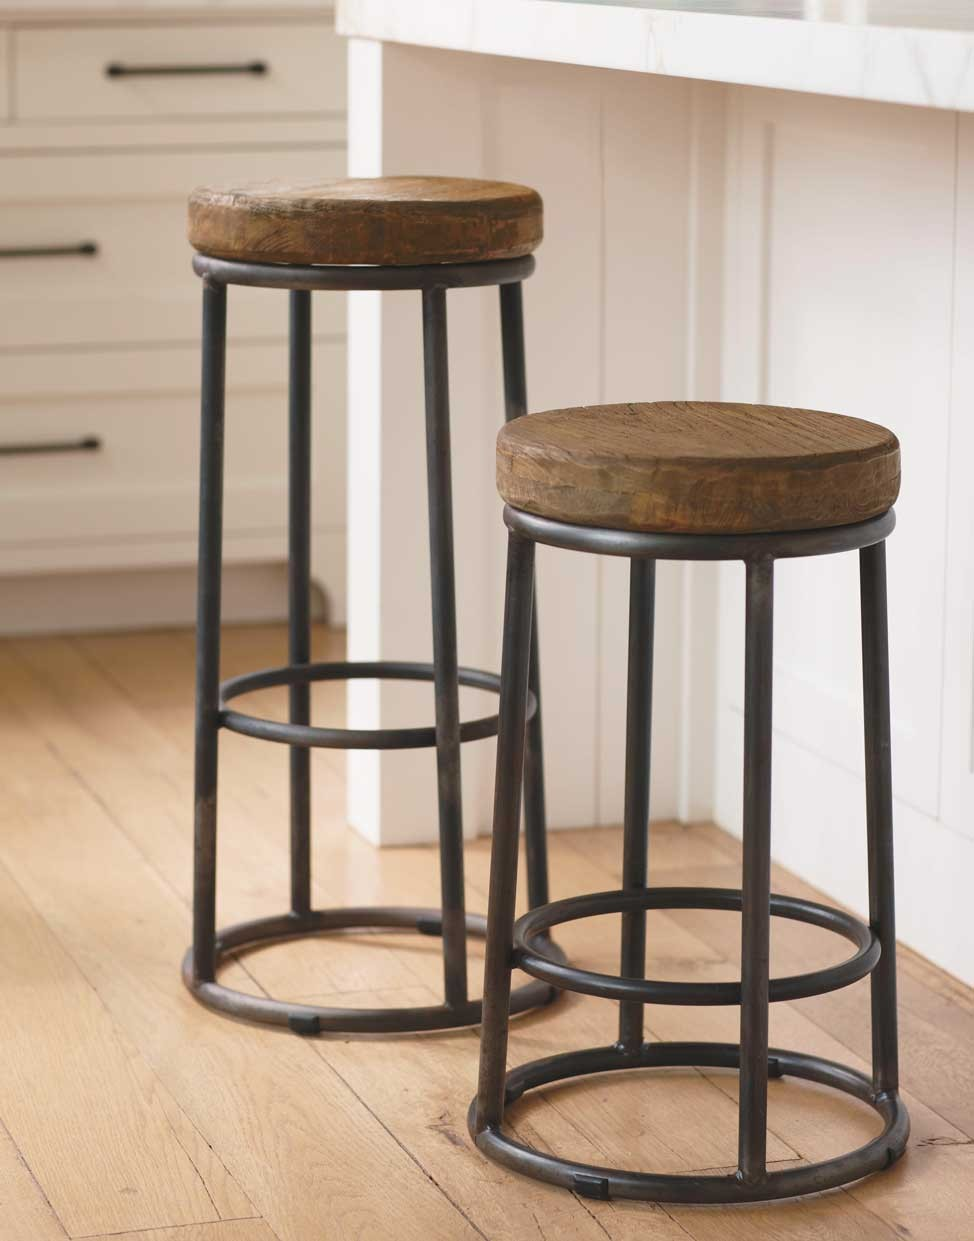 Awesome Industrial Style Bar Stools Homesfeed